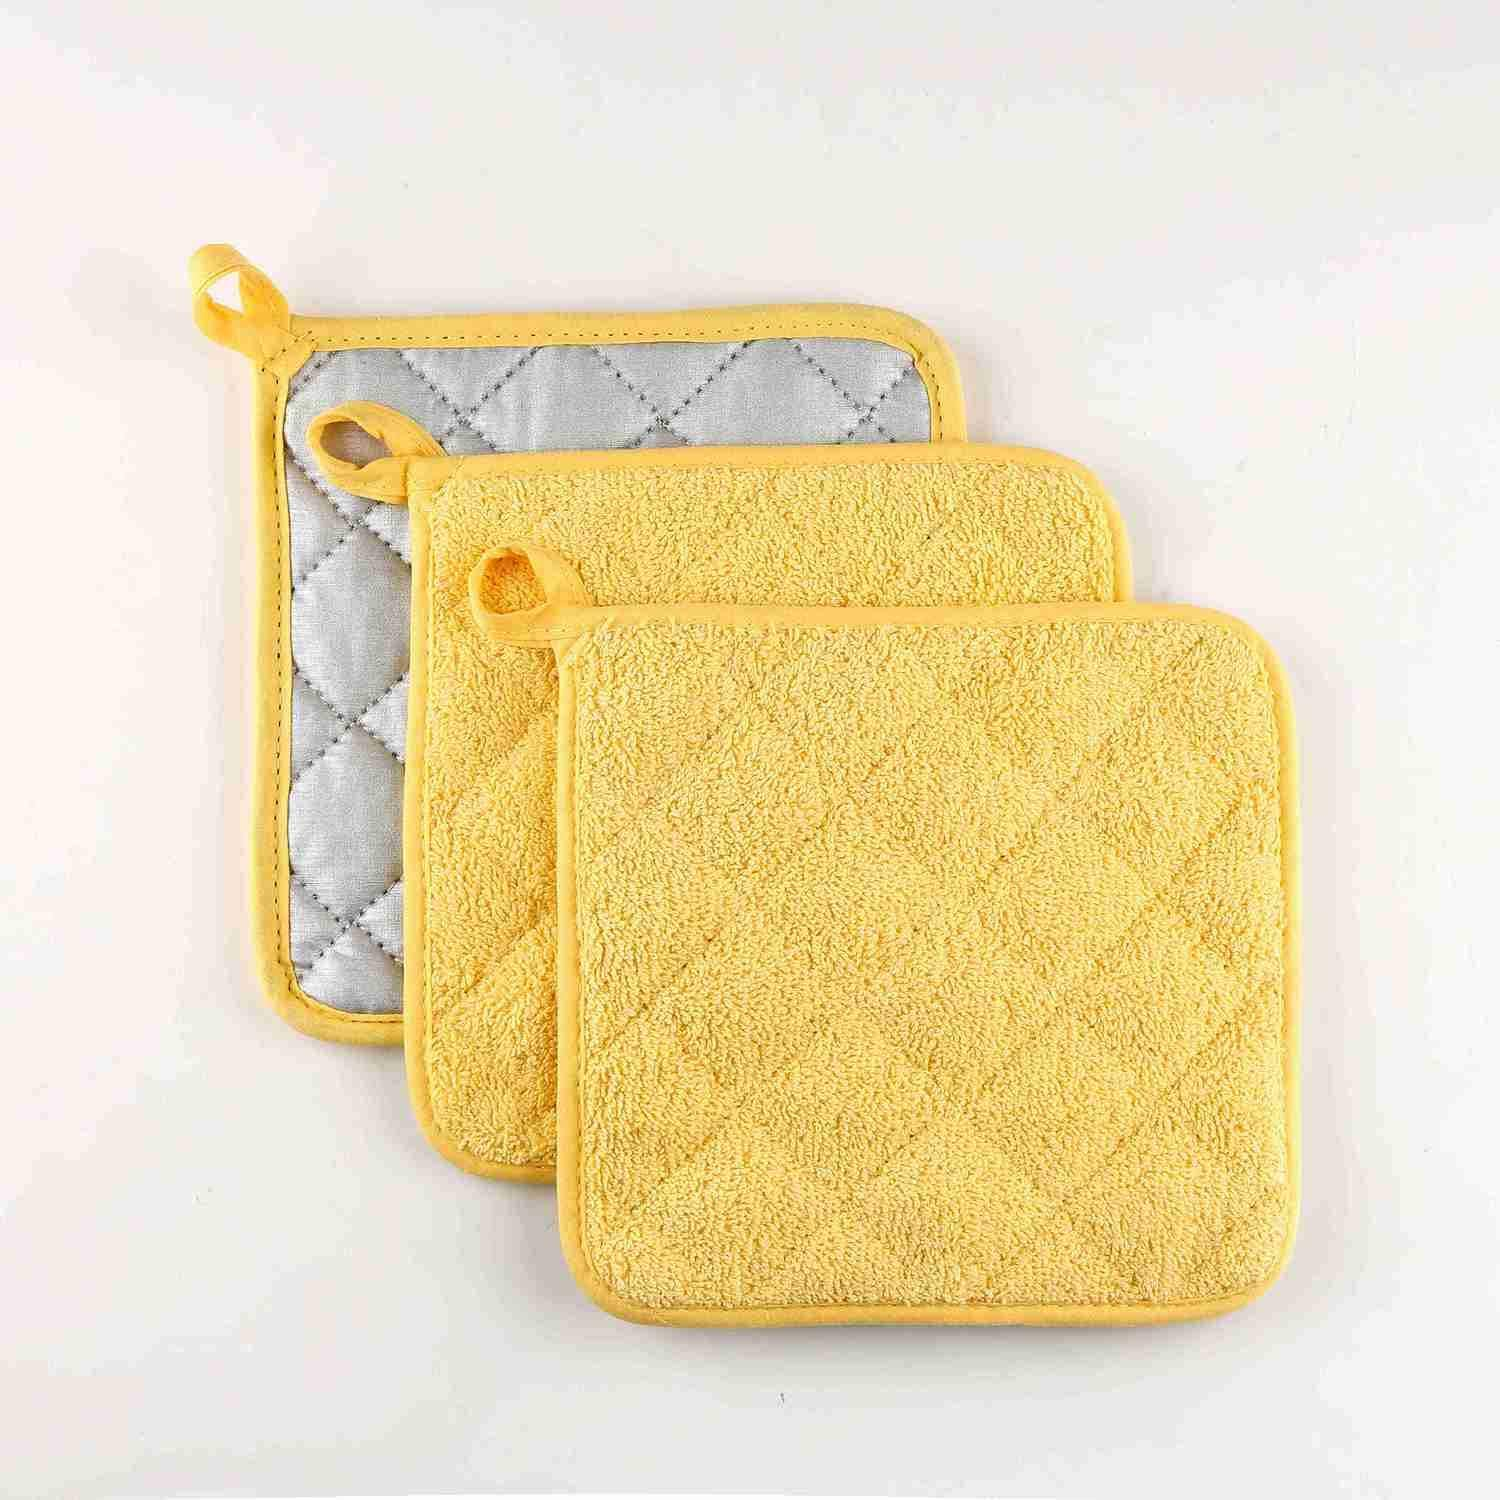 VEIKERY Oven Pot Holders 100% Cotton Potholders,7x7 inches,3 Packs,Perfect for Cooking, Baking, Serving, BBQ(Yellow)